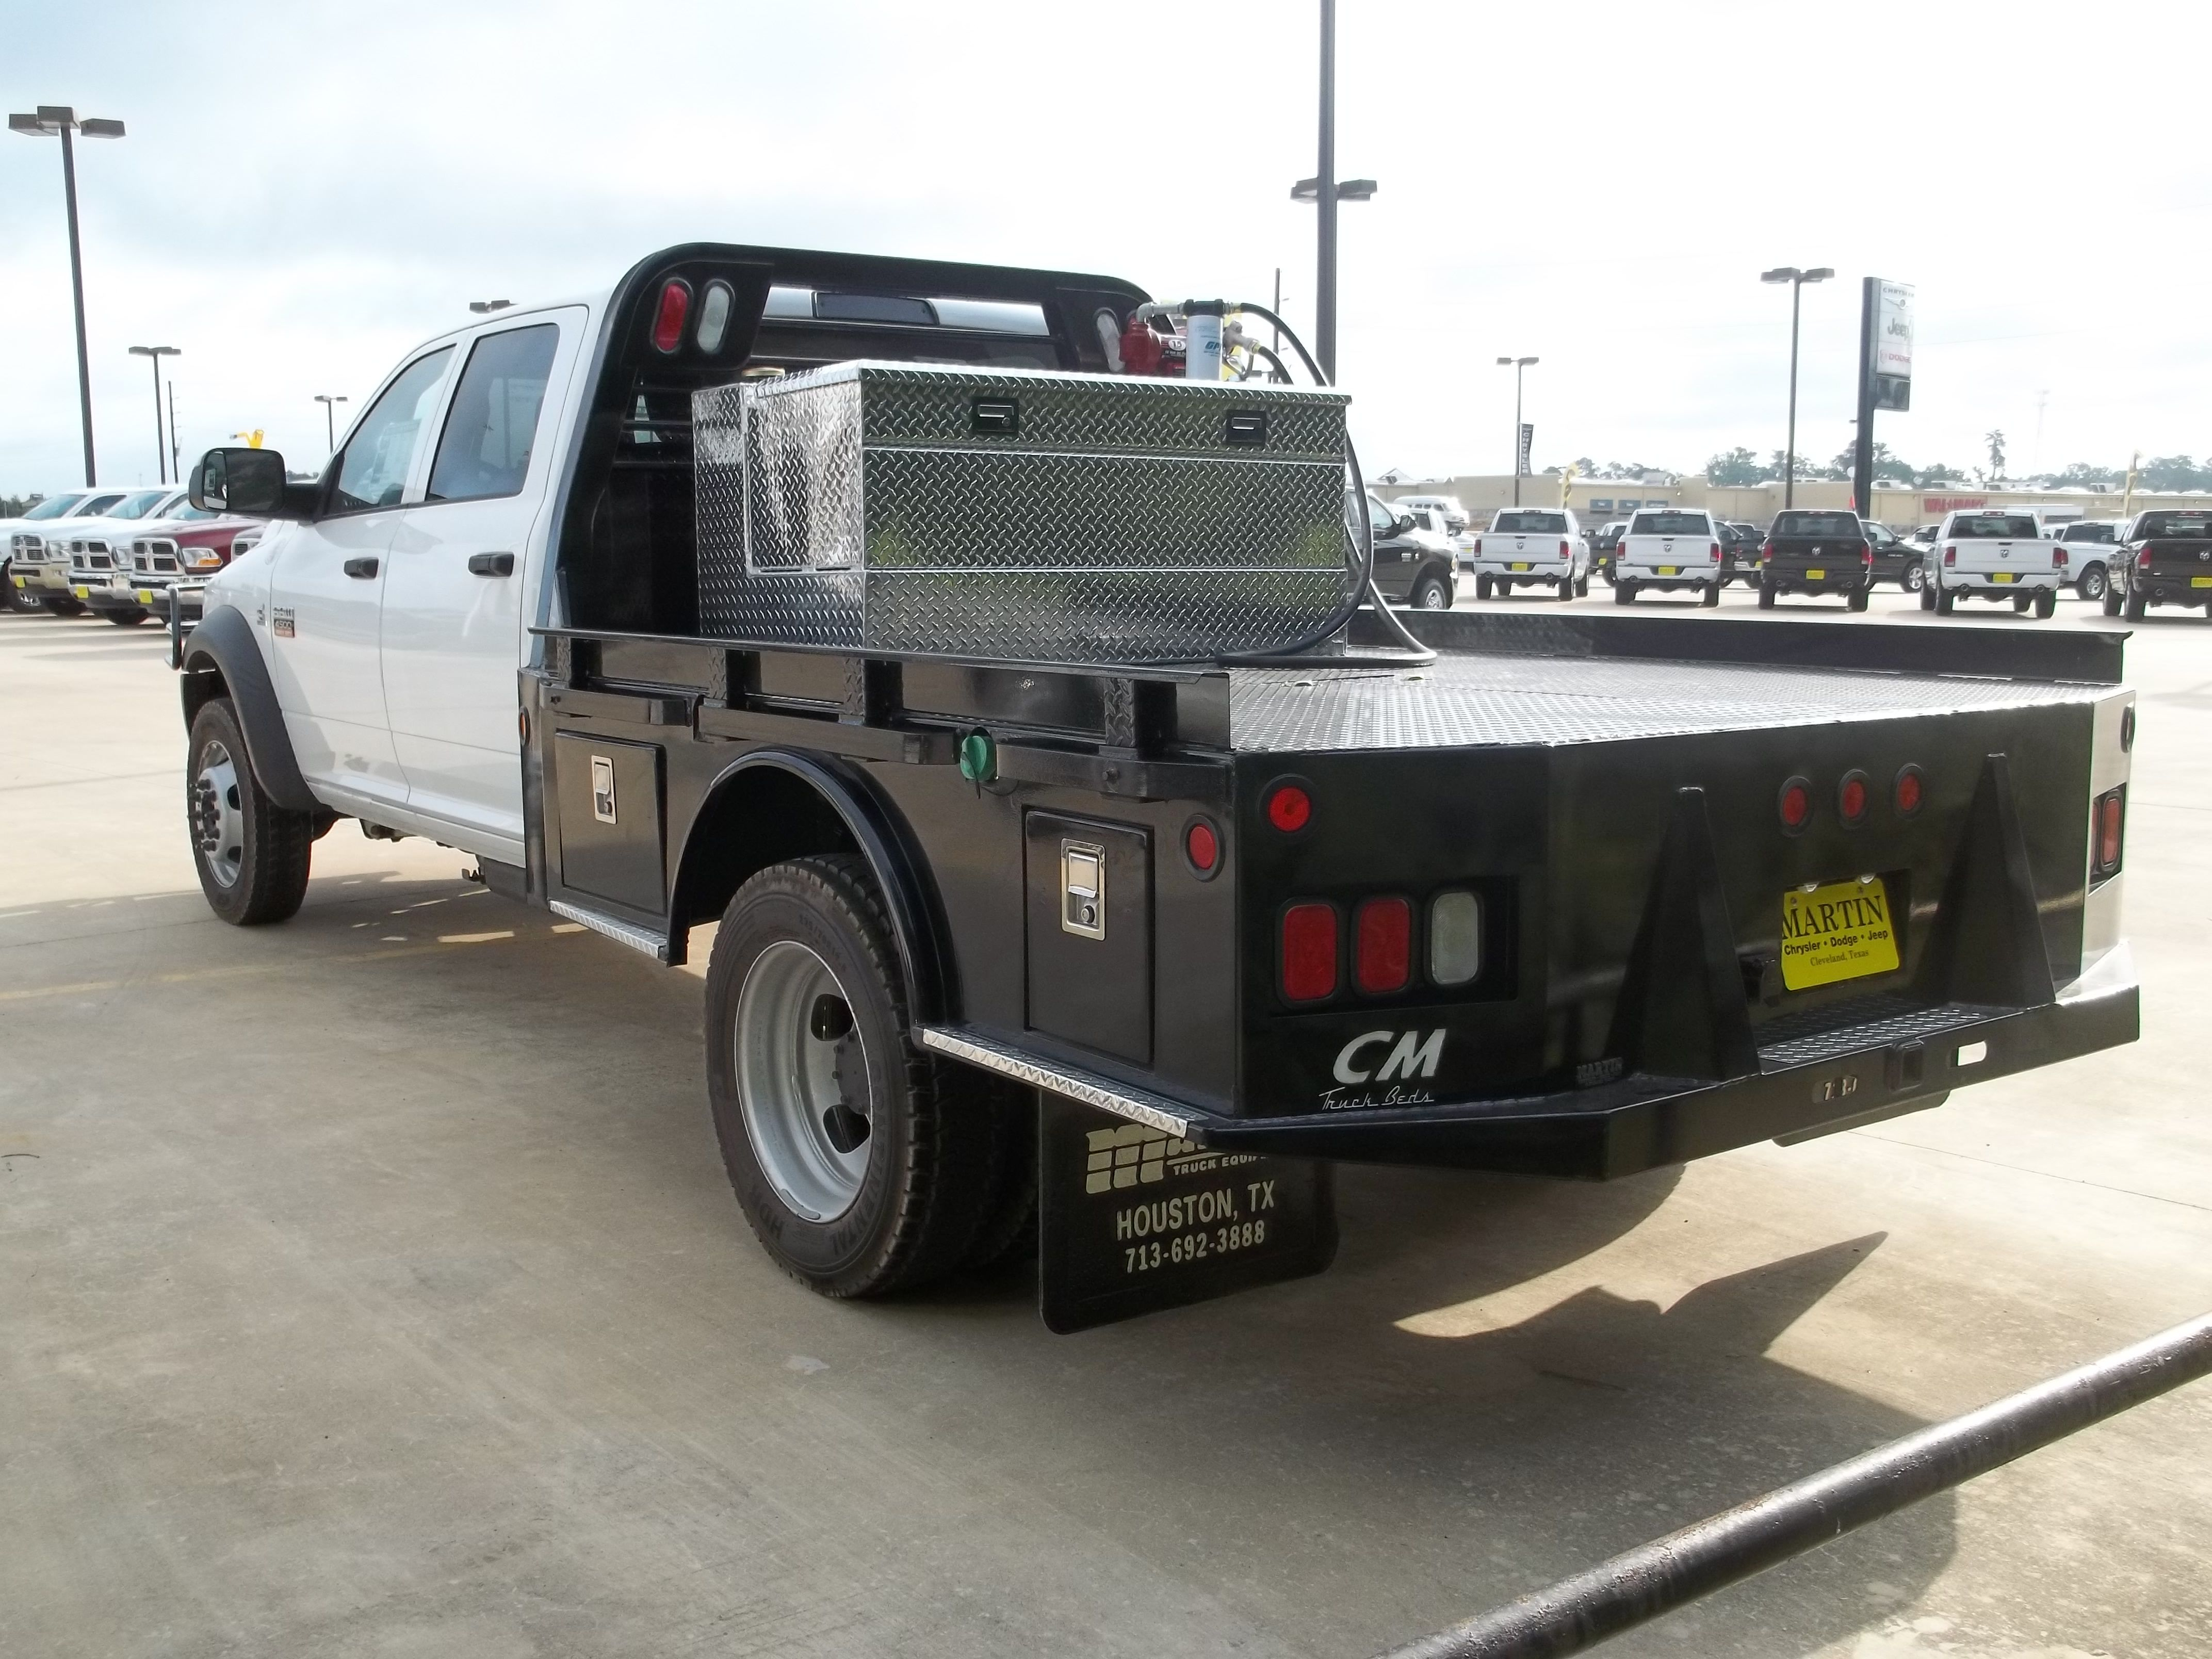 Plans for flatbed ford f350 - Sample Skirted Flatbed With Short Rails Headache Rack Fuel Tank Toolbox Combo